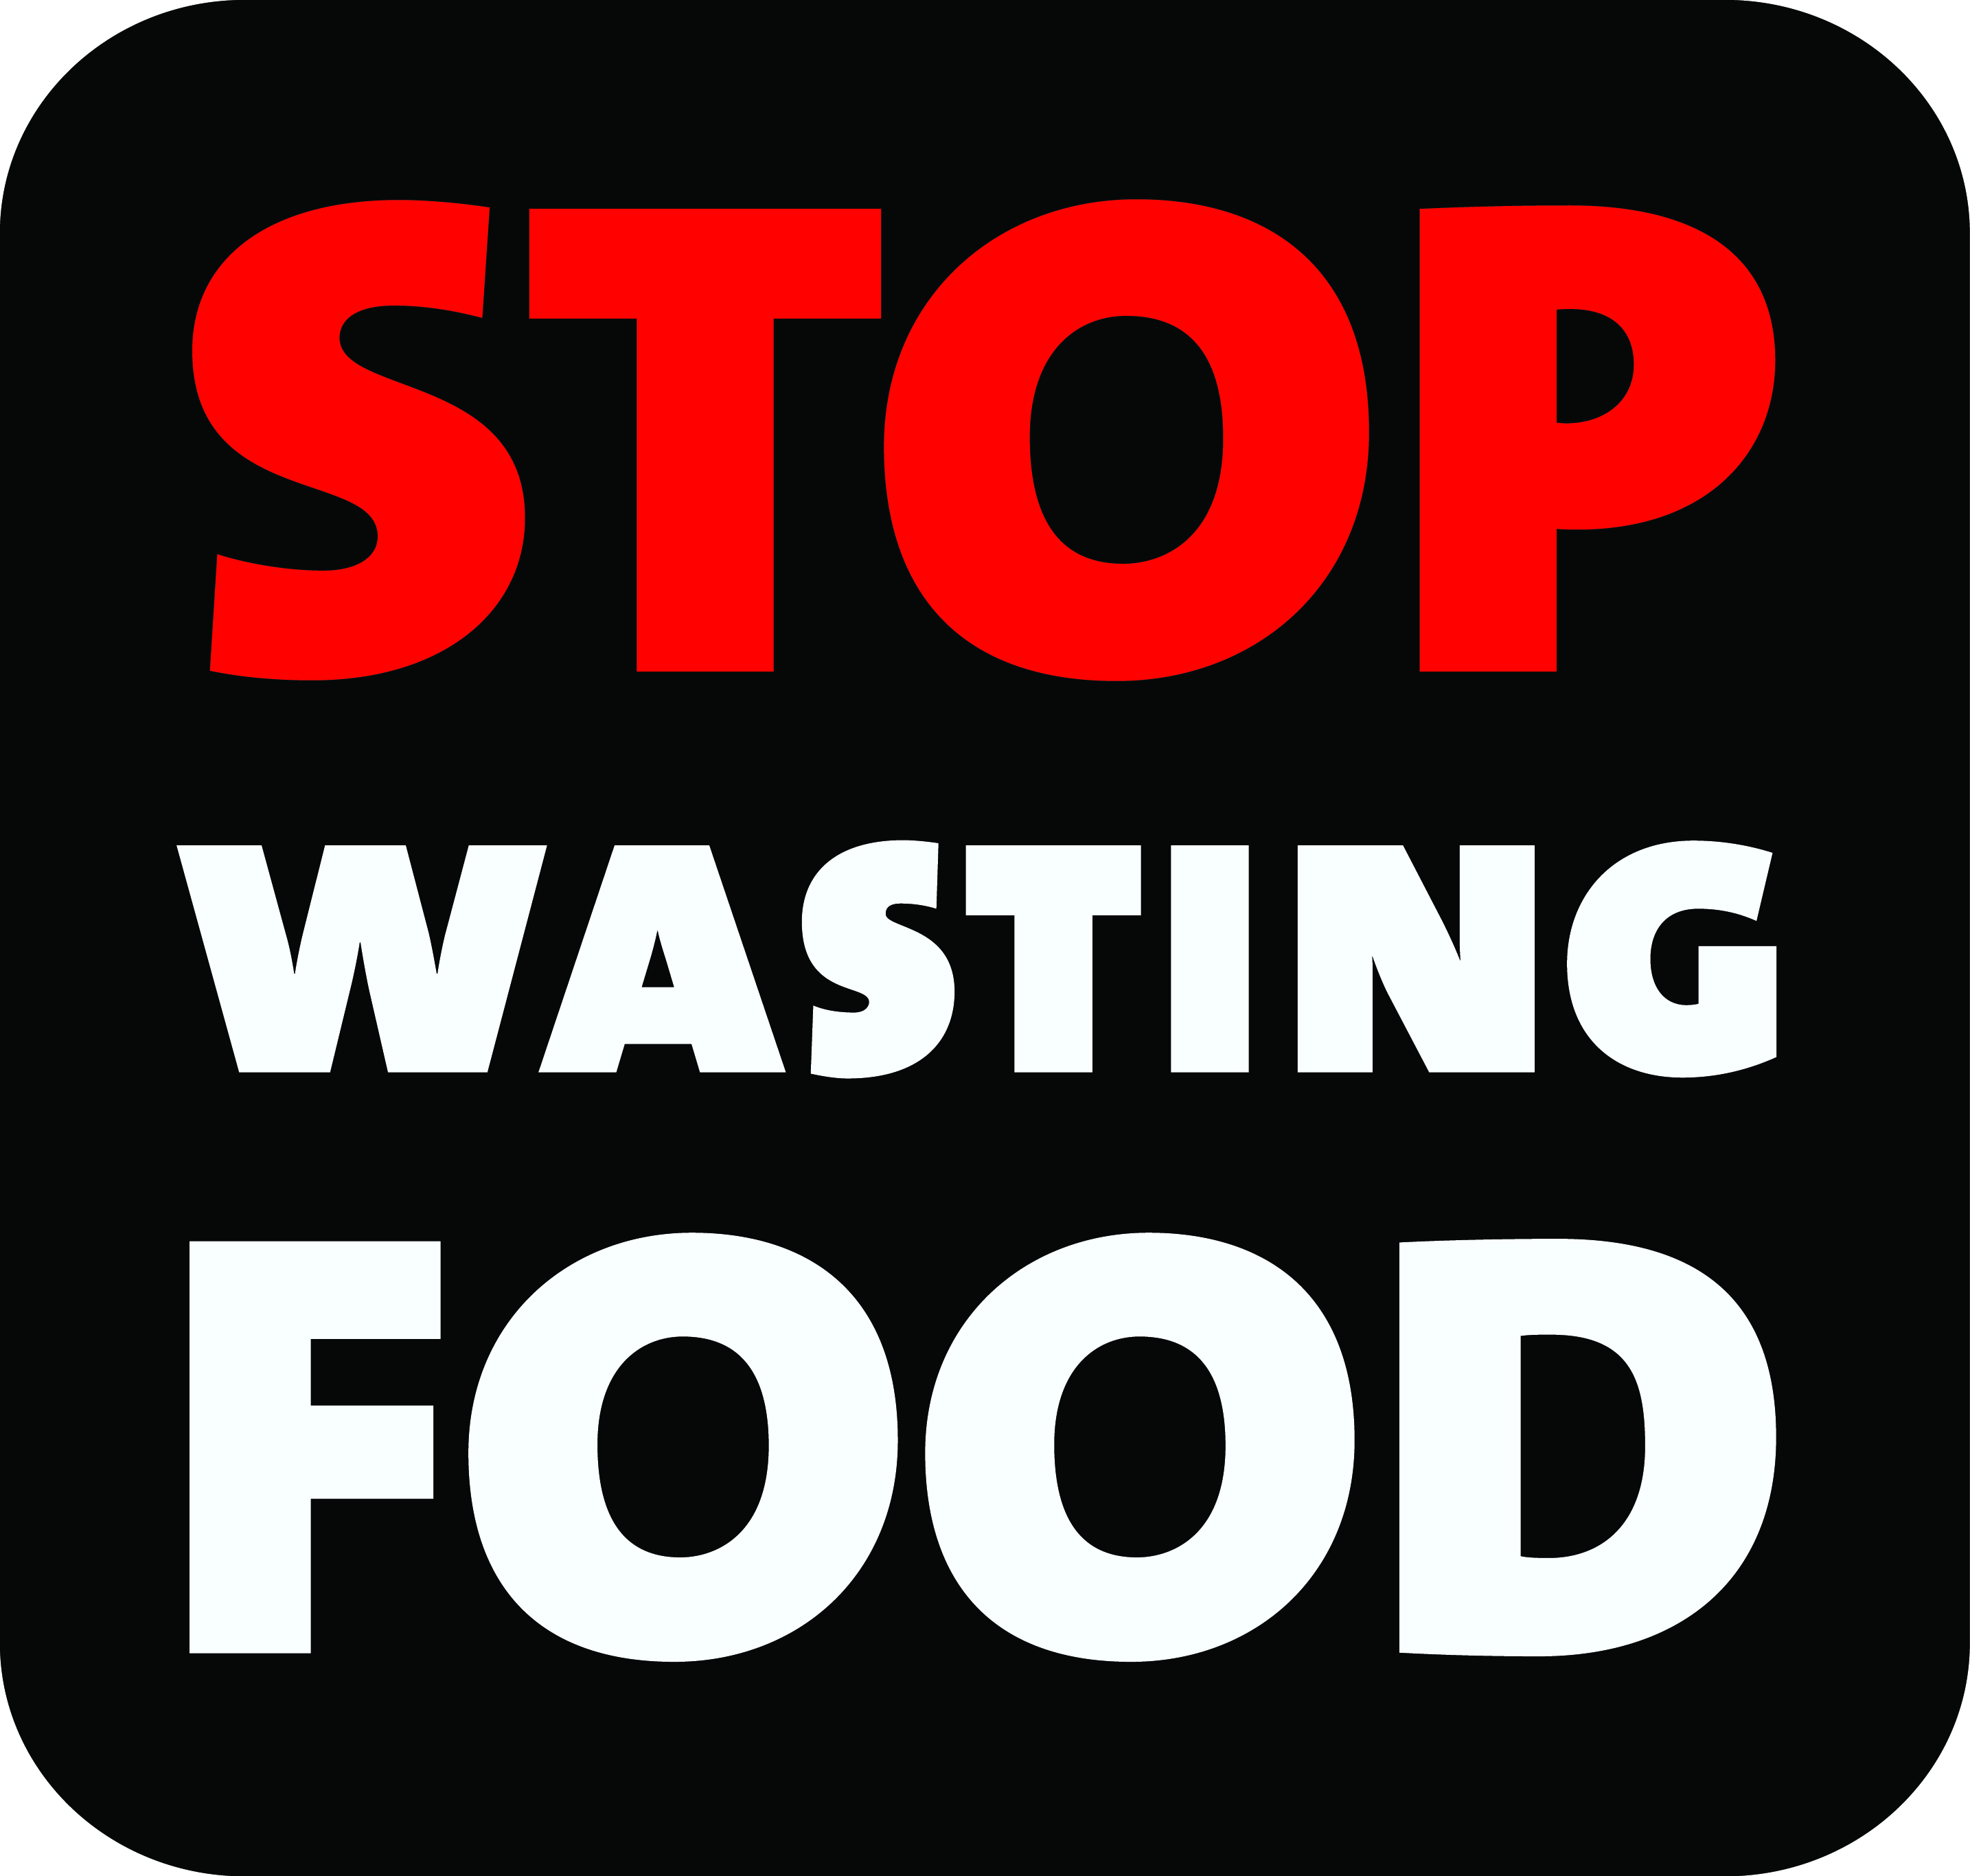 STOP WASTING FOOD LOGO